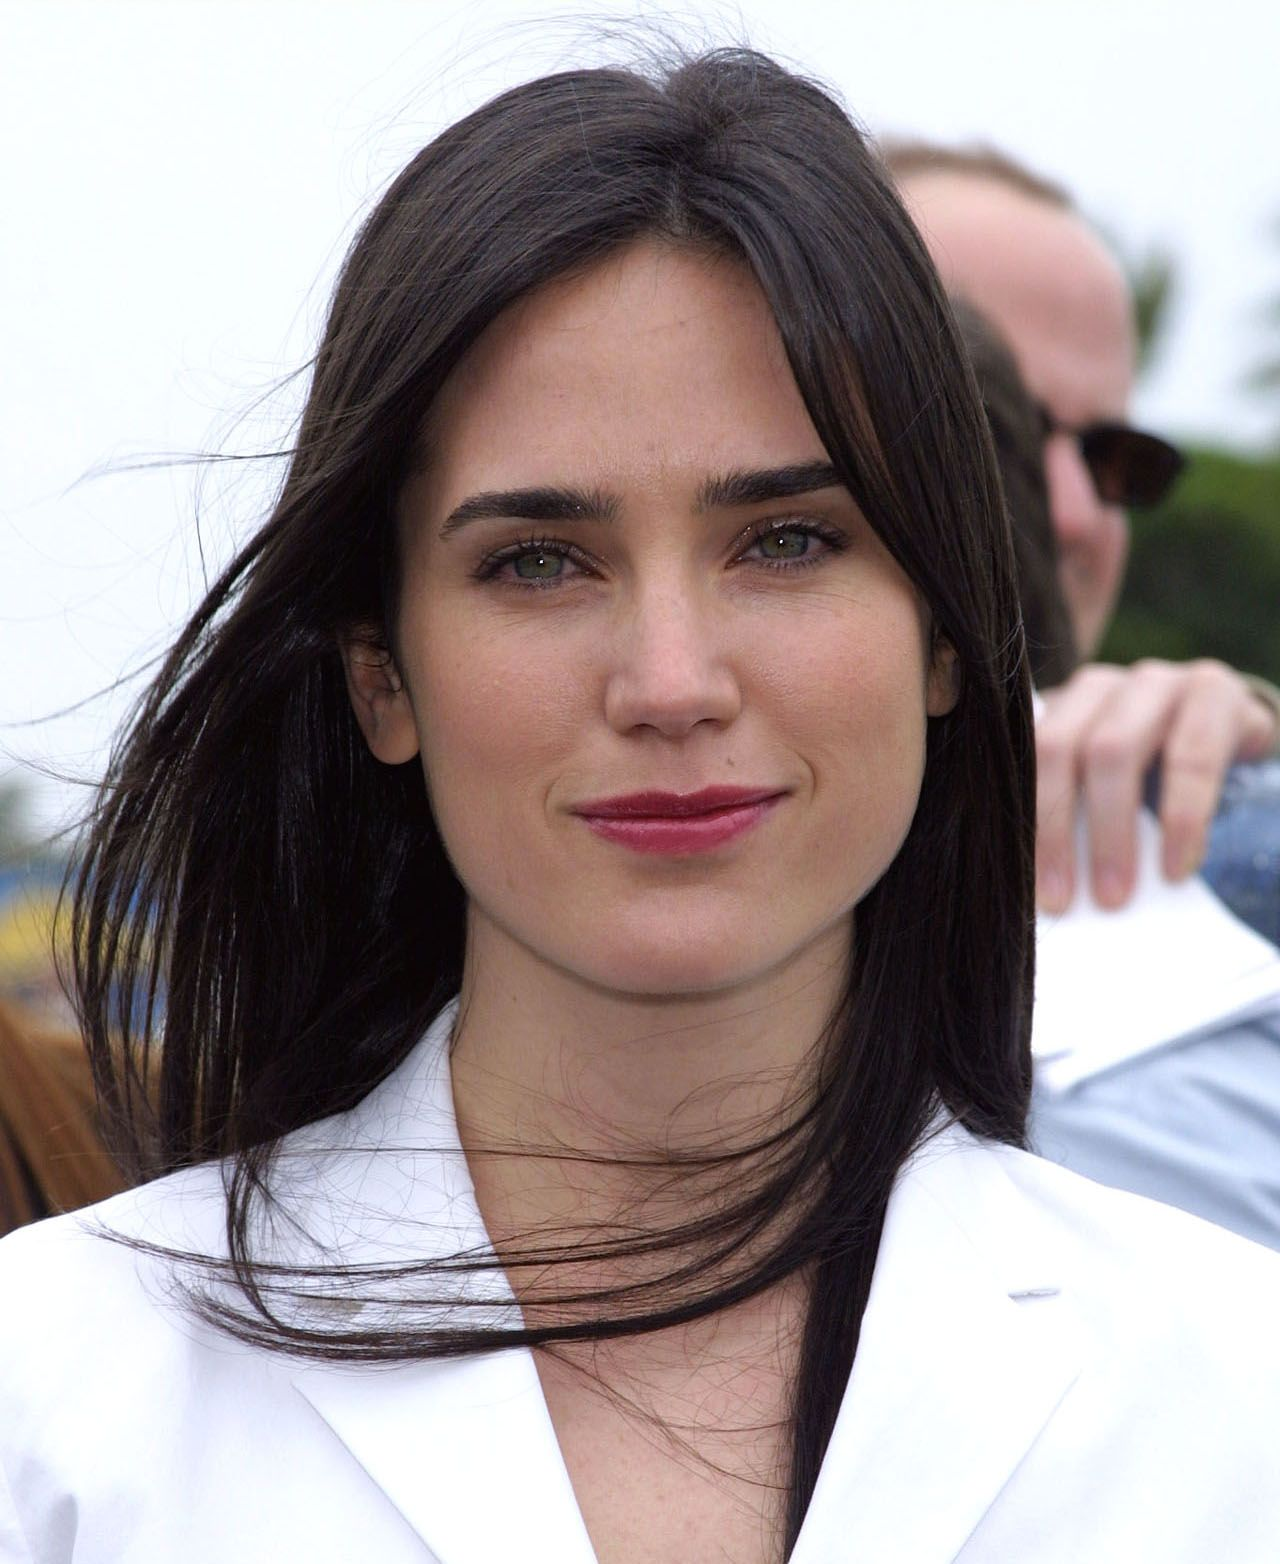 Jennifer Connelly 2001 Stock Photos and Pictures   Getty ...  Jennifer Connelly 2001